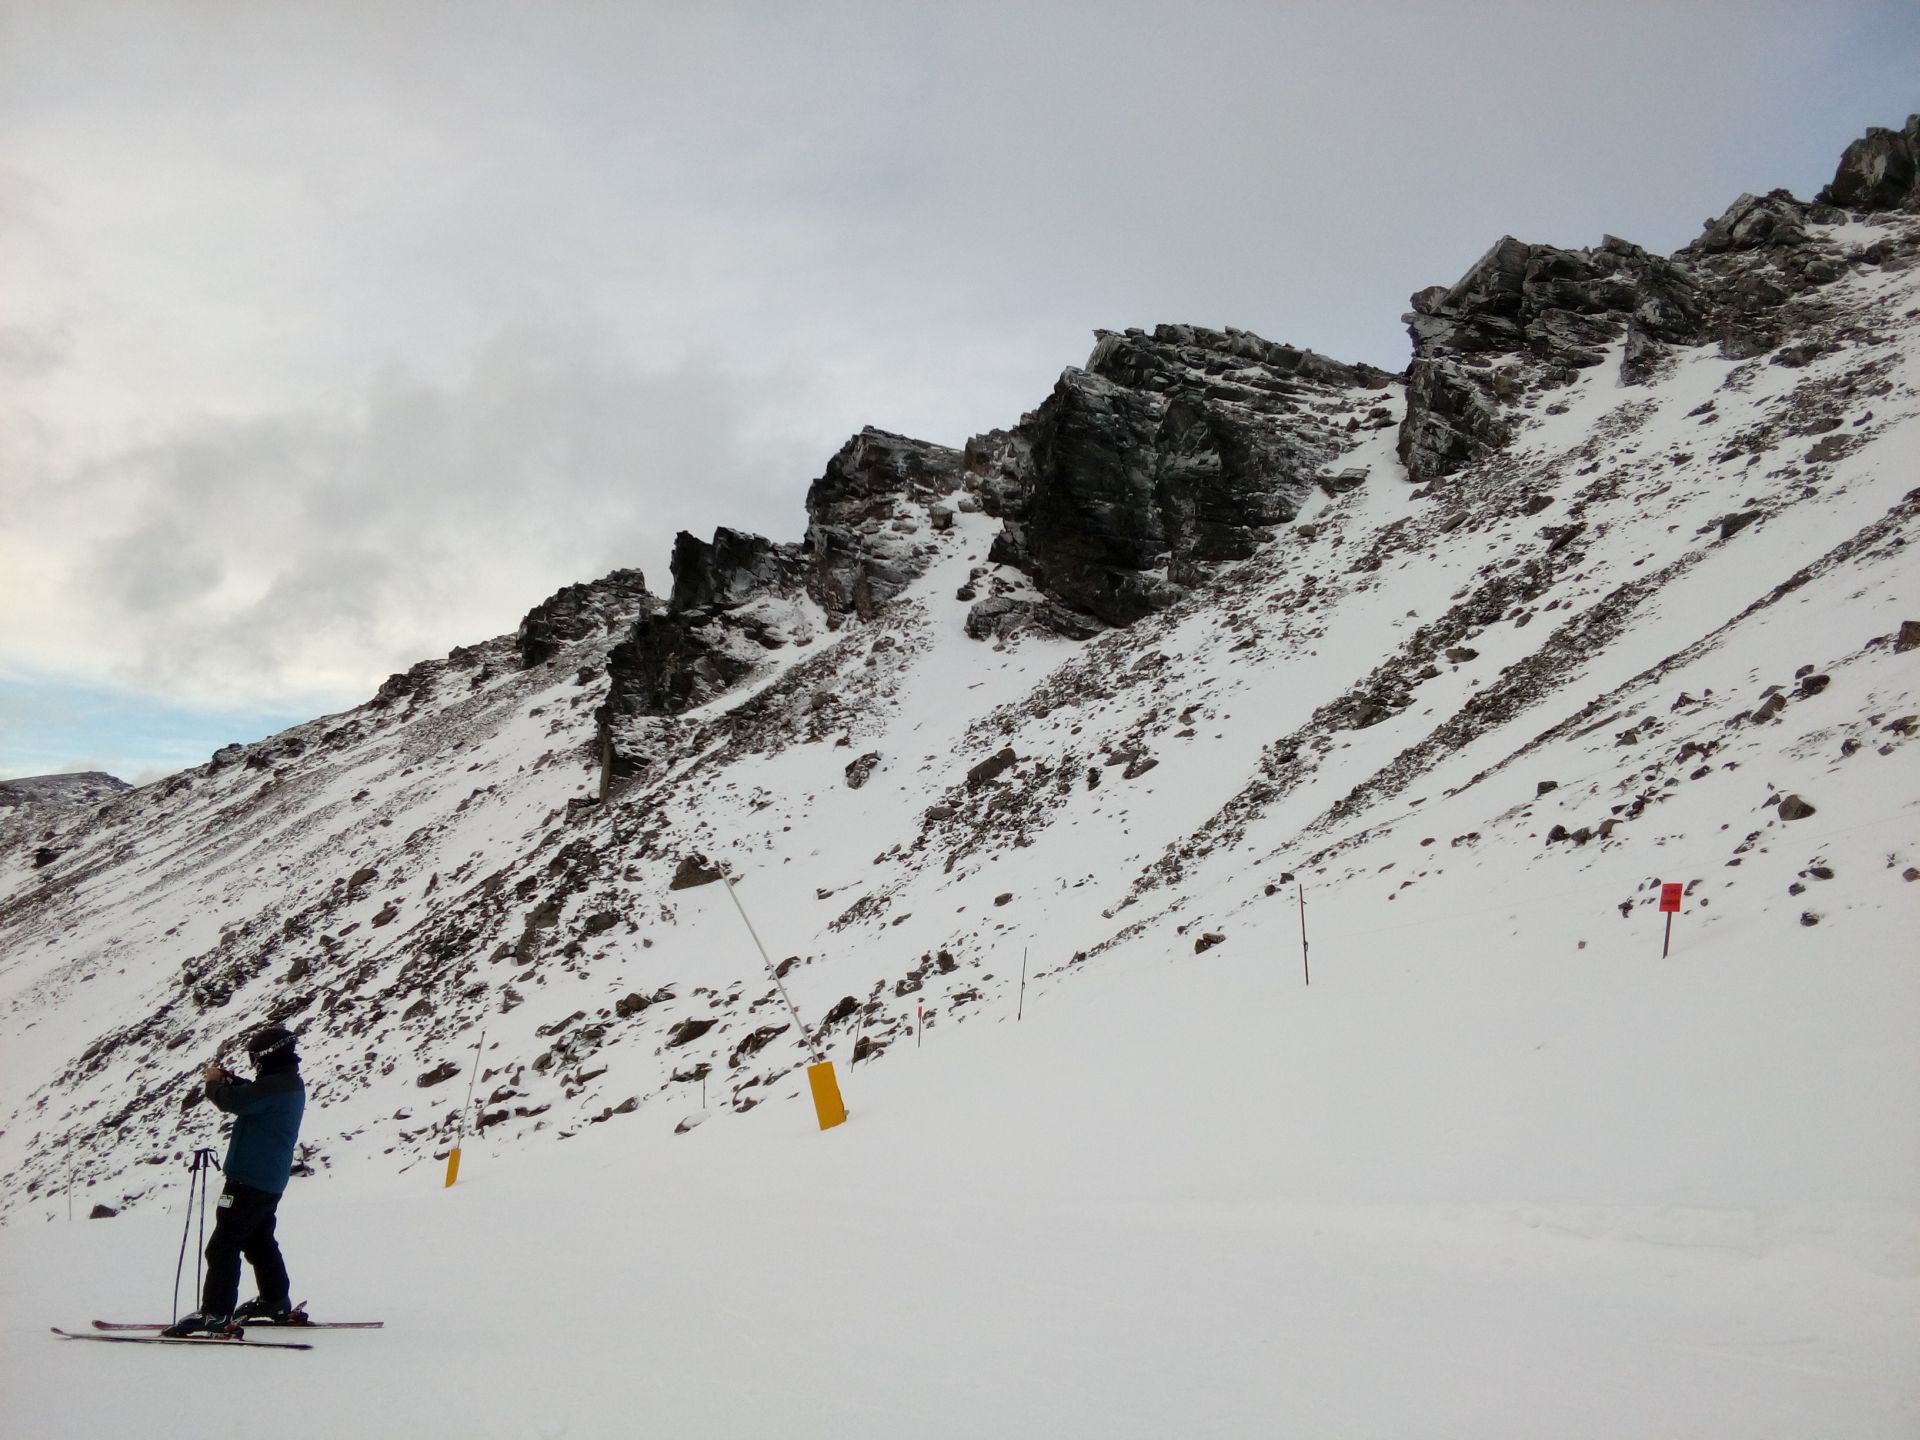 Becoming an intern with EA Ski and Snowboard - Nora's Journey